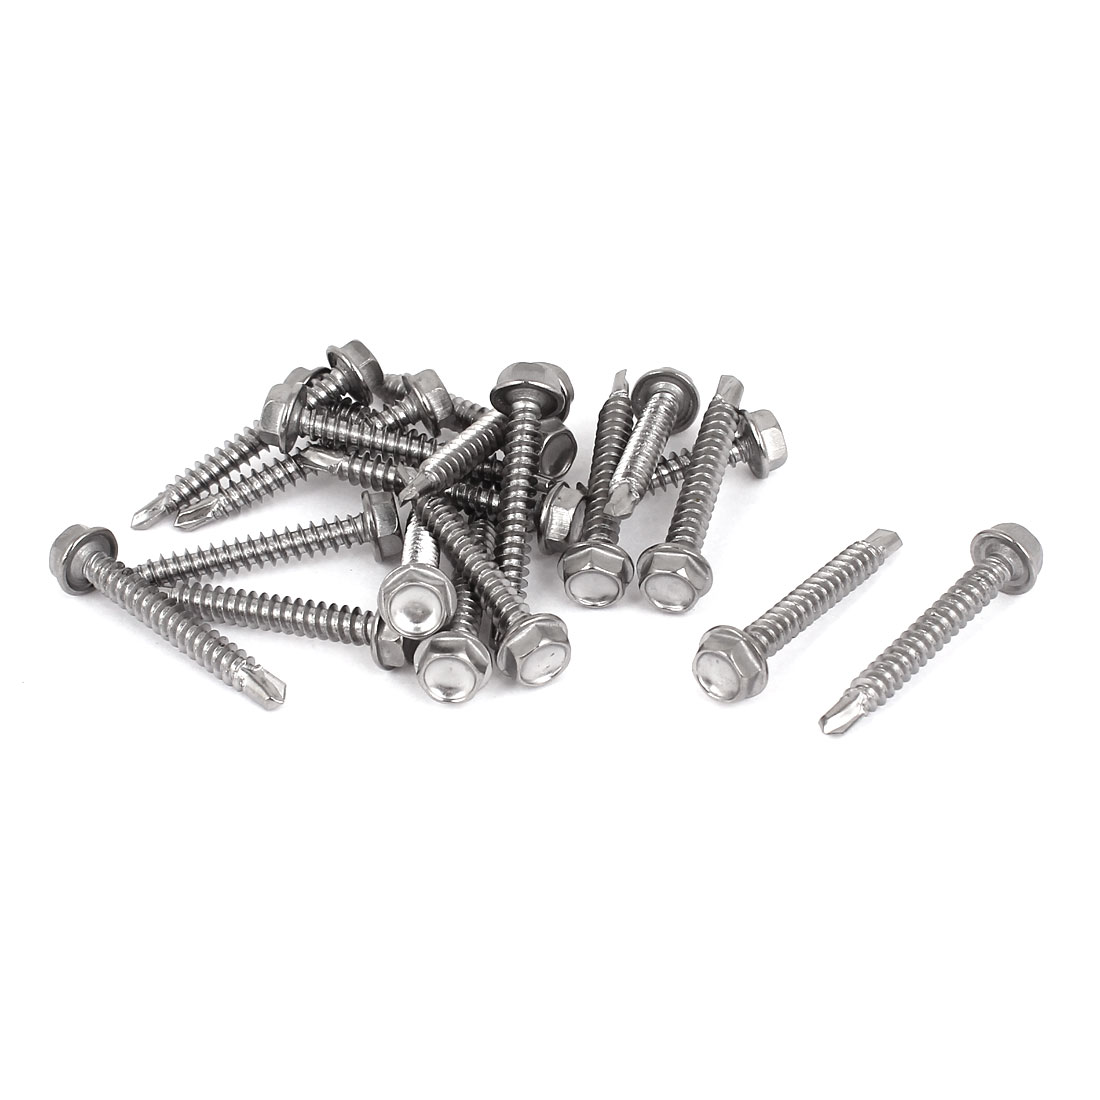 20 Pcs M4x32mm Stainless Steel Hex Head Self Drilling Tapping Screws